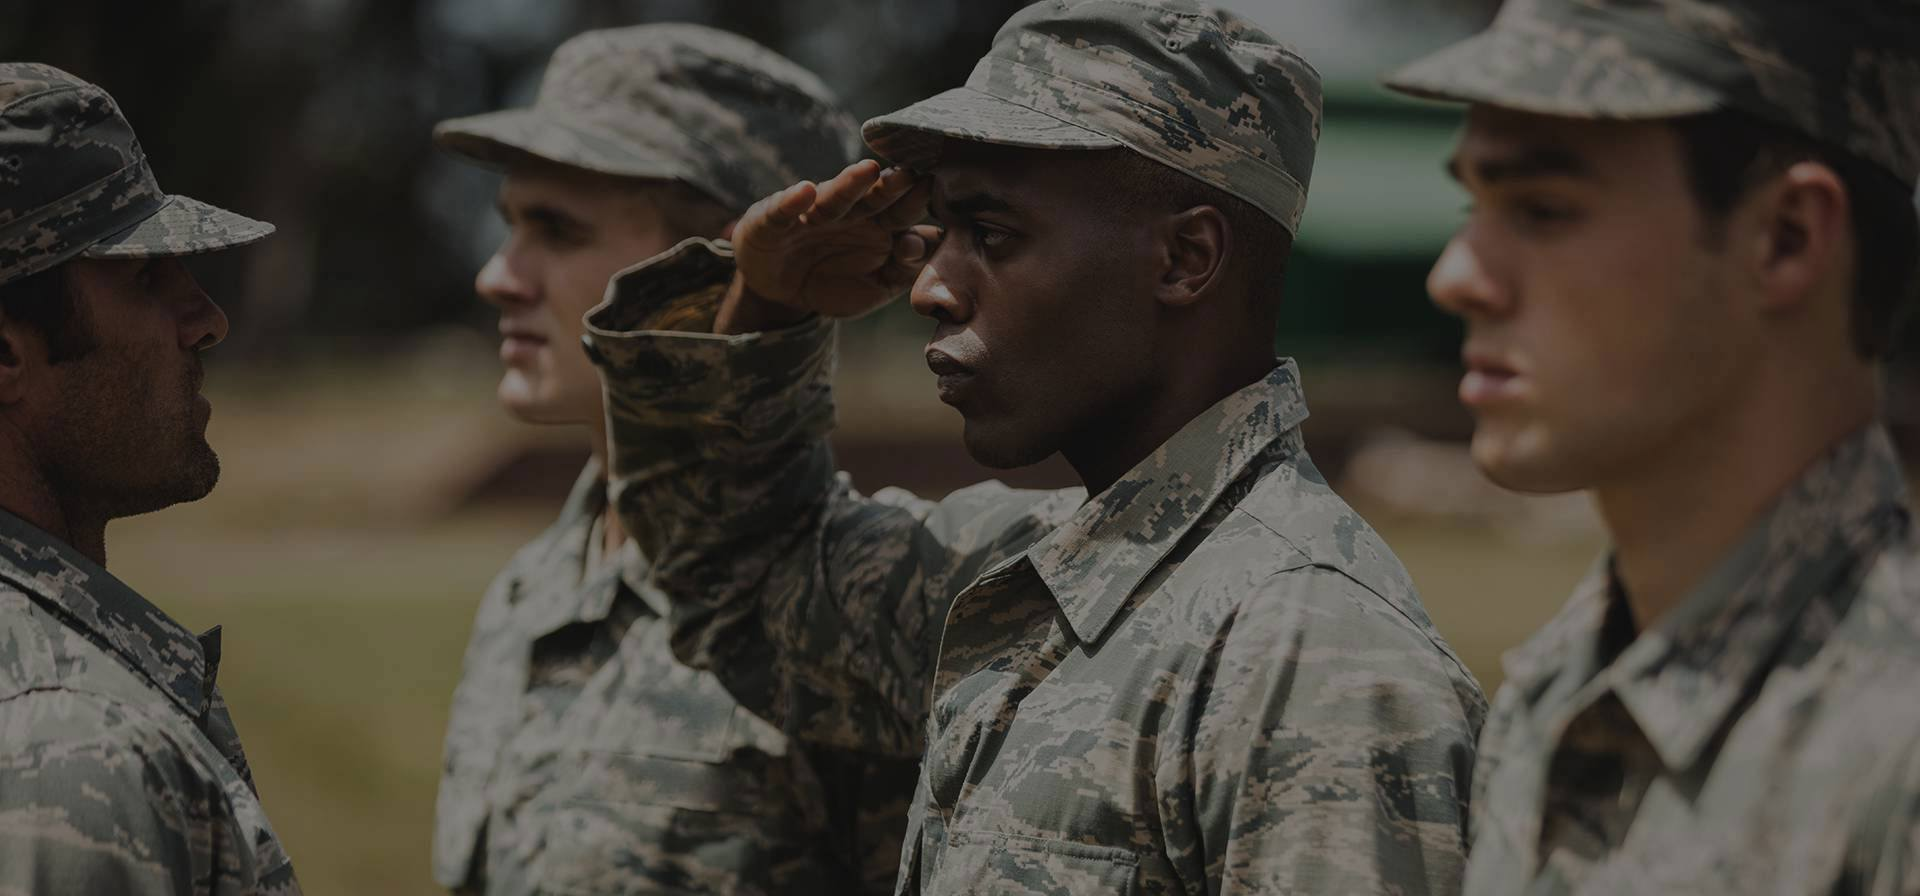 Official Military Headwear and Caps